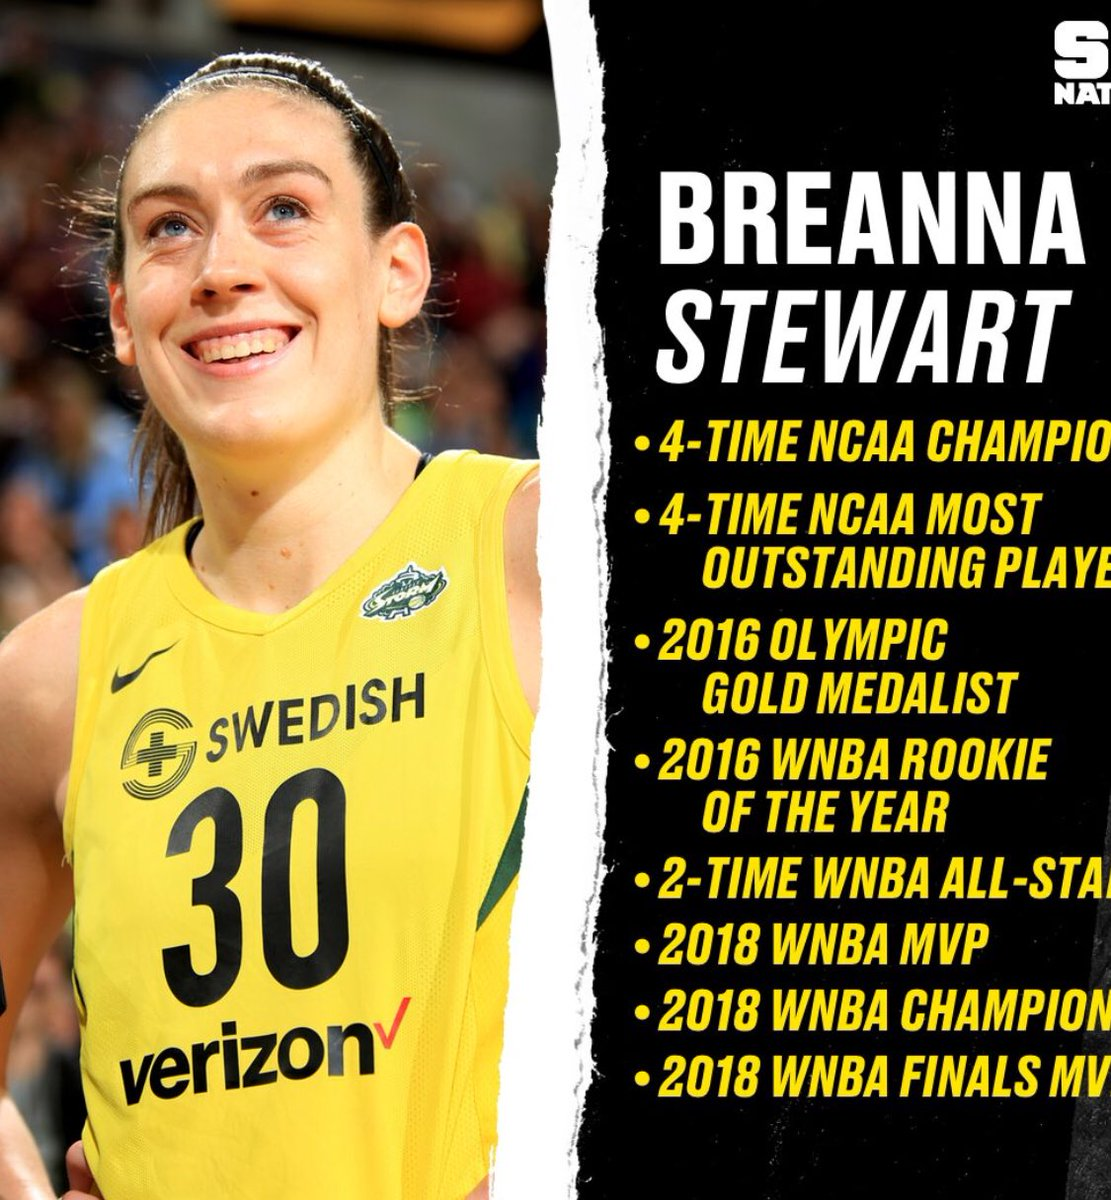 Dayuuuuum. @breannastewart could retire at 24 and have a 1st-ballot HOF career  #WNBAFinals<br>http://pic.twitter.com/wkhTC5rC7g